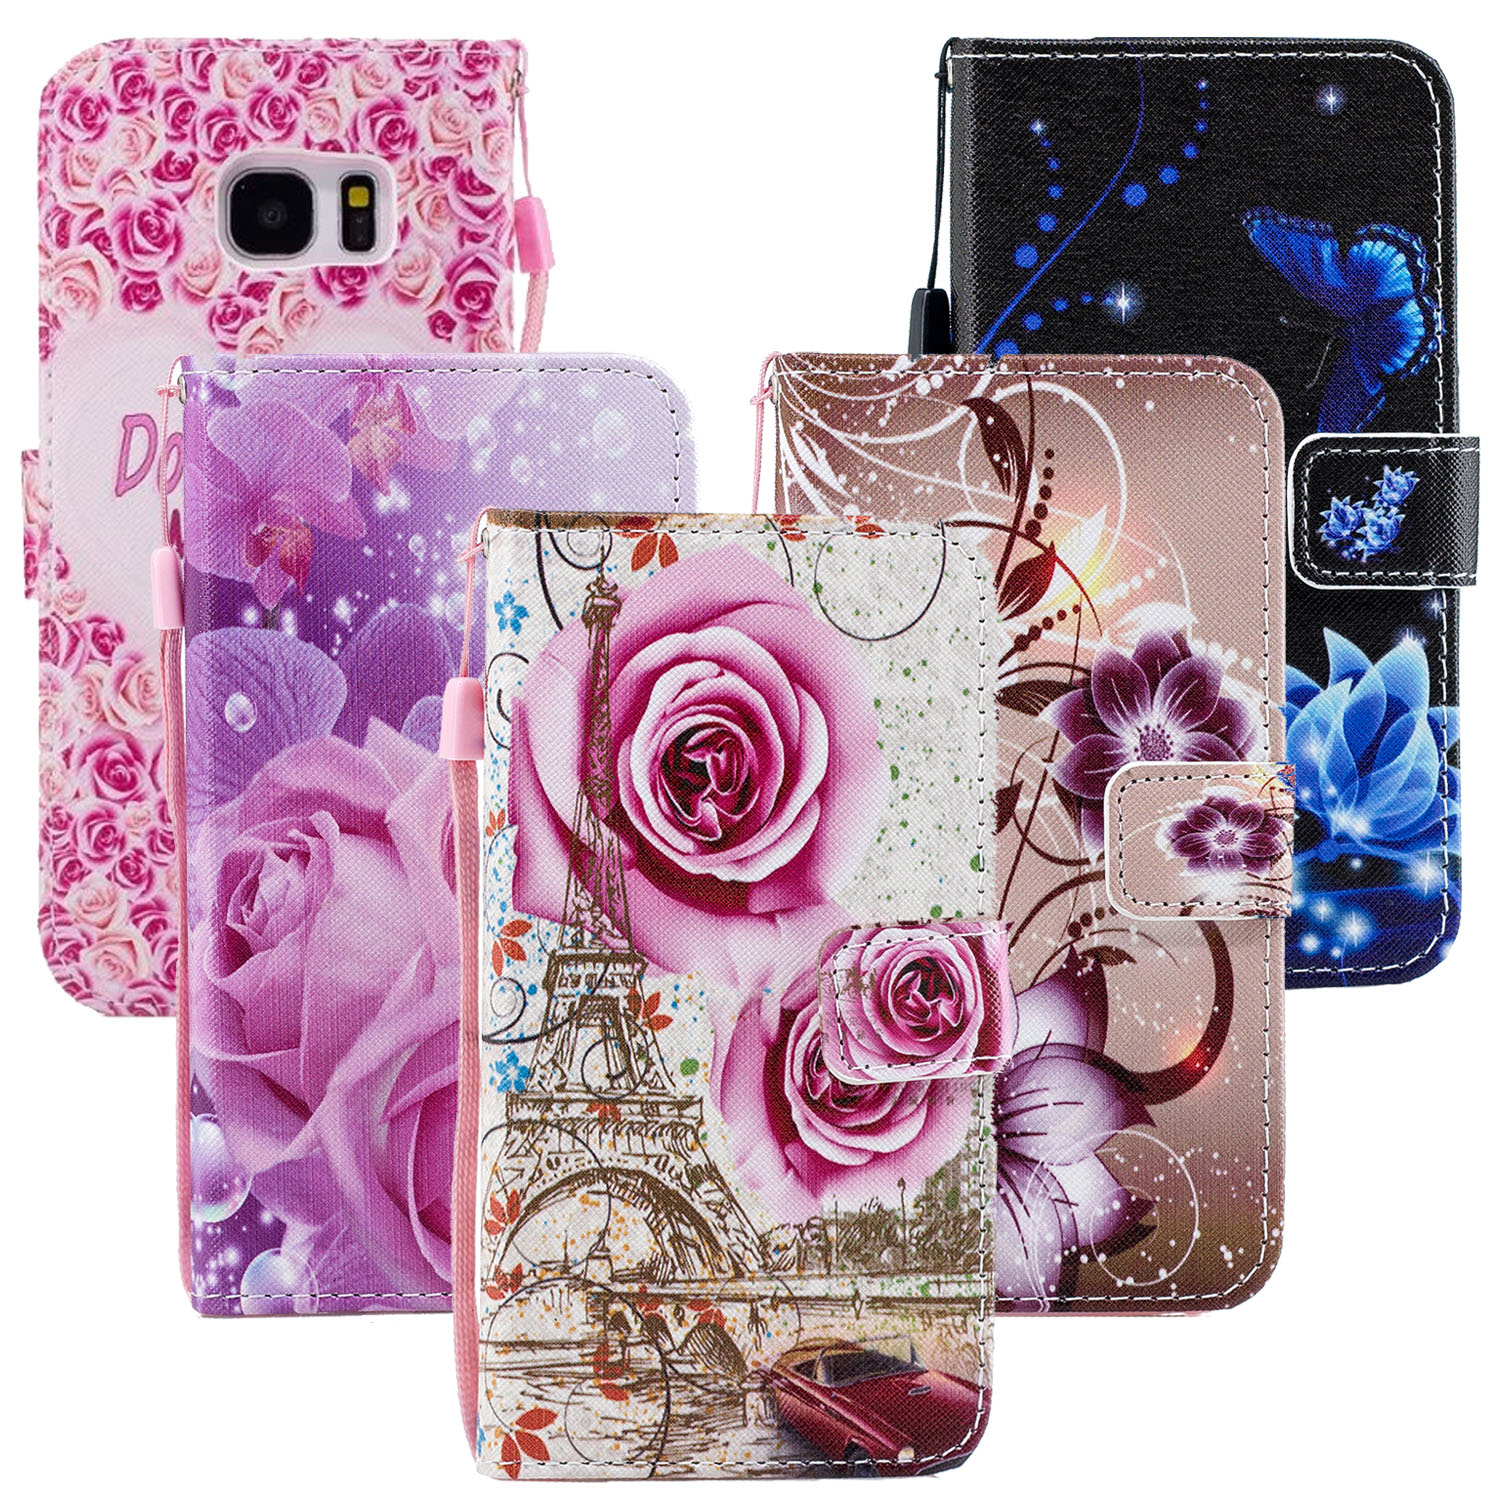 Flower Leather <font><b>Cases</b></font> For <font><b>Samsung</b></font> Galaxy S9 S8 Plus Note 8 <font><b>Case</b></font> S3 S5 Neo A3 A5 A7 A8 Plus J1 J3 J2 J5 J7 Prime Cover Wallet Bag image